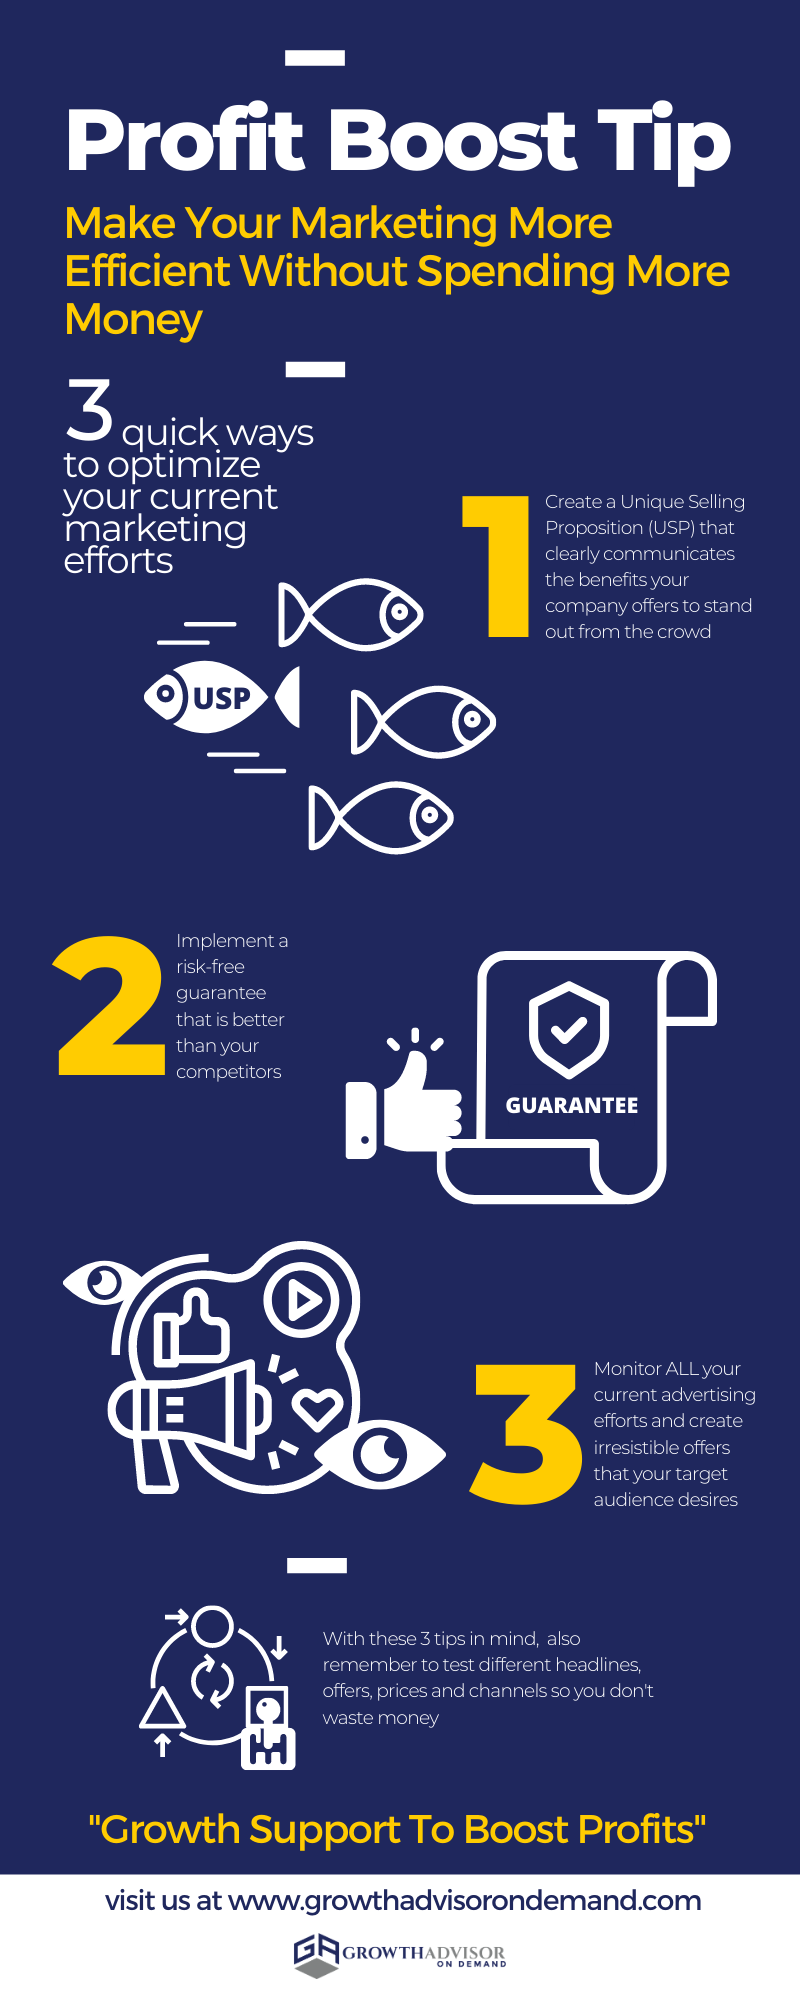 Profit Boost Tip Infographic #2